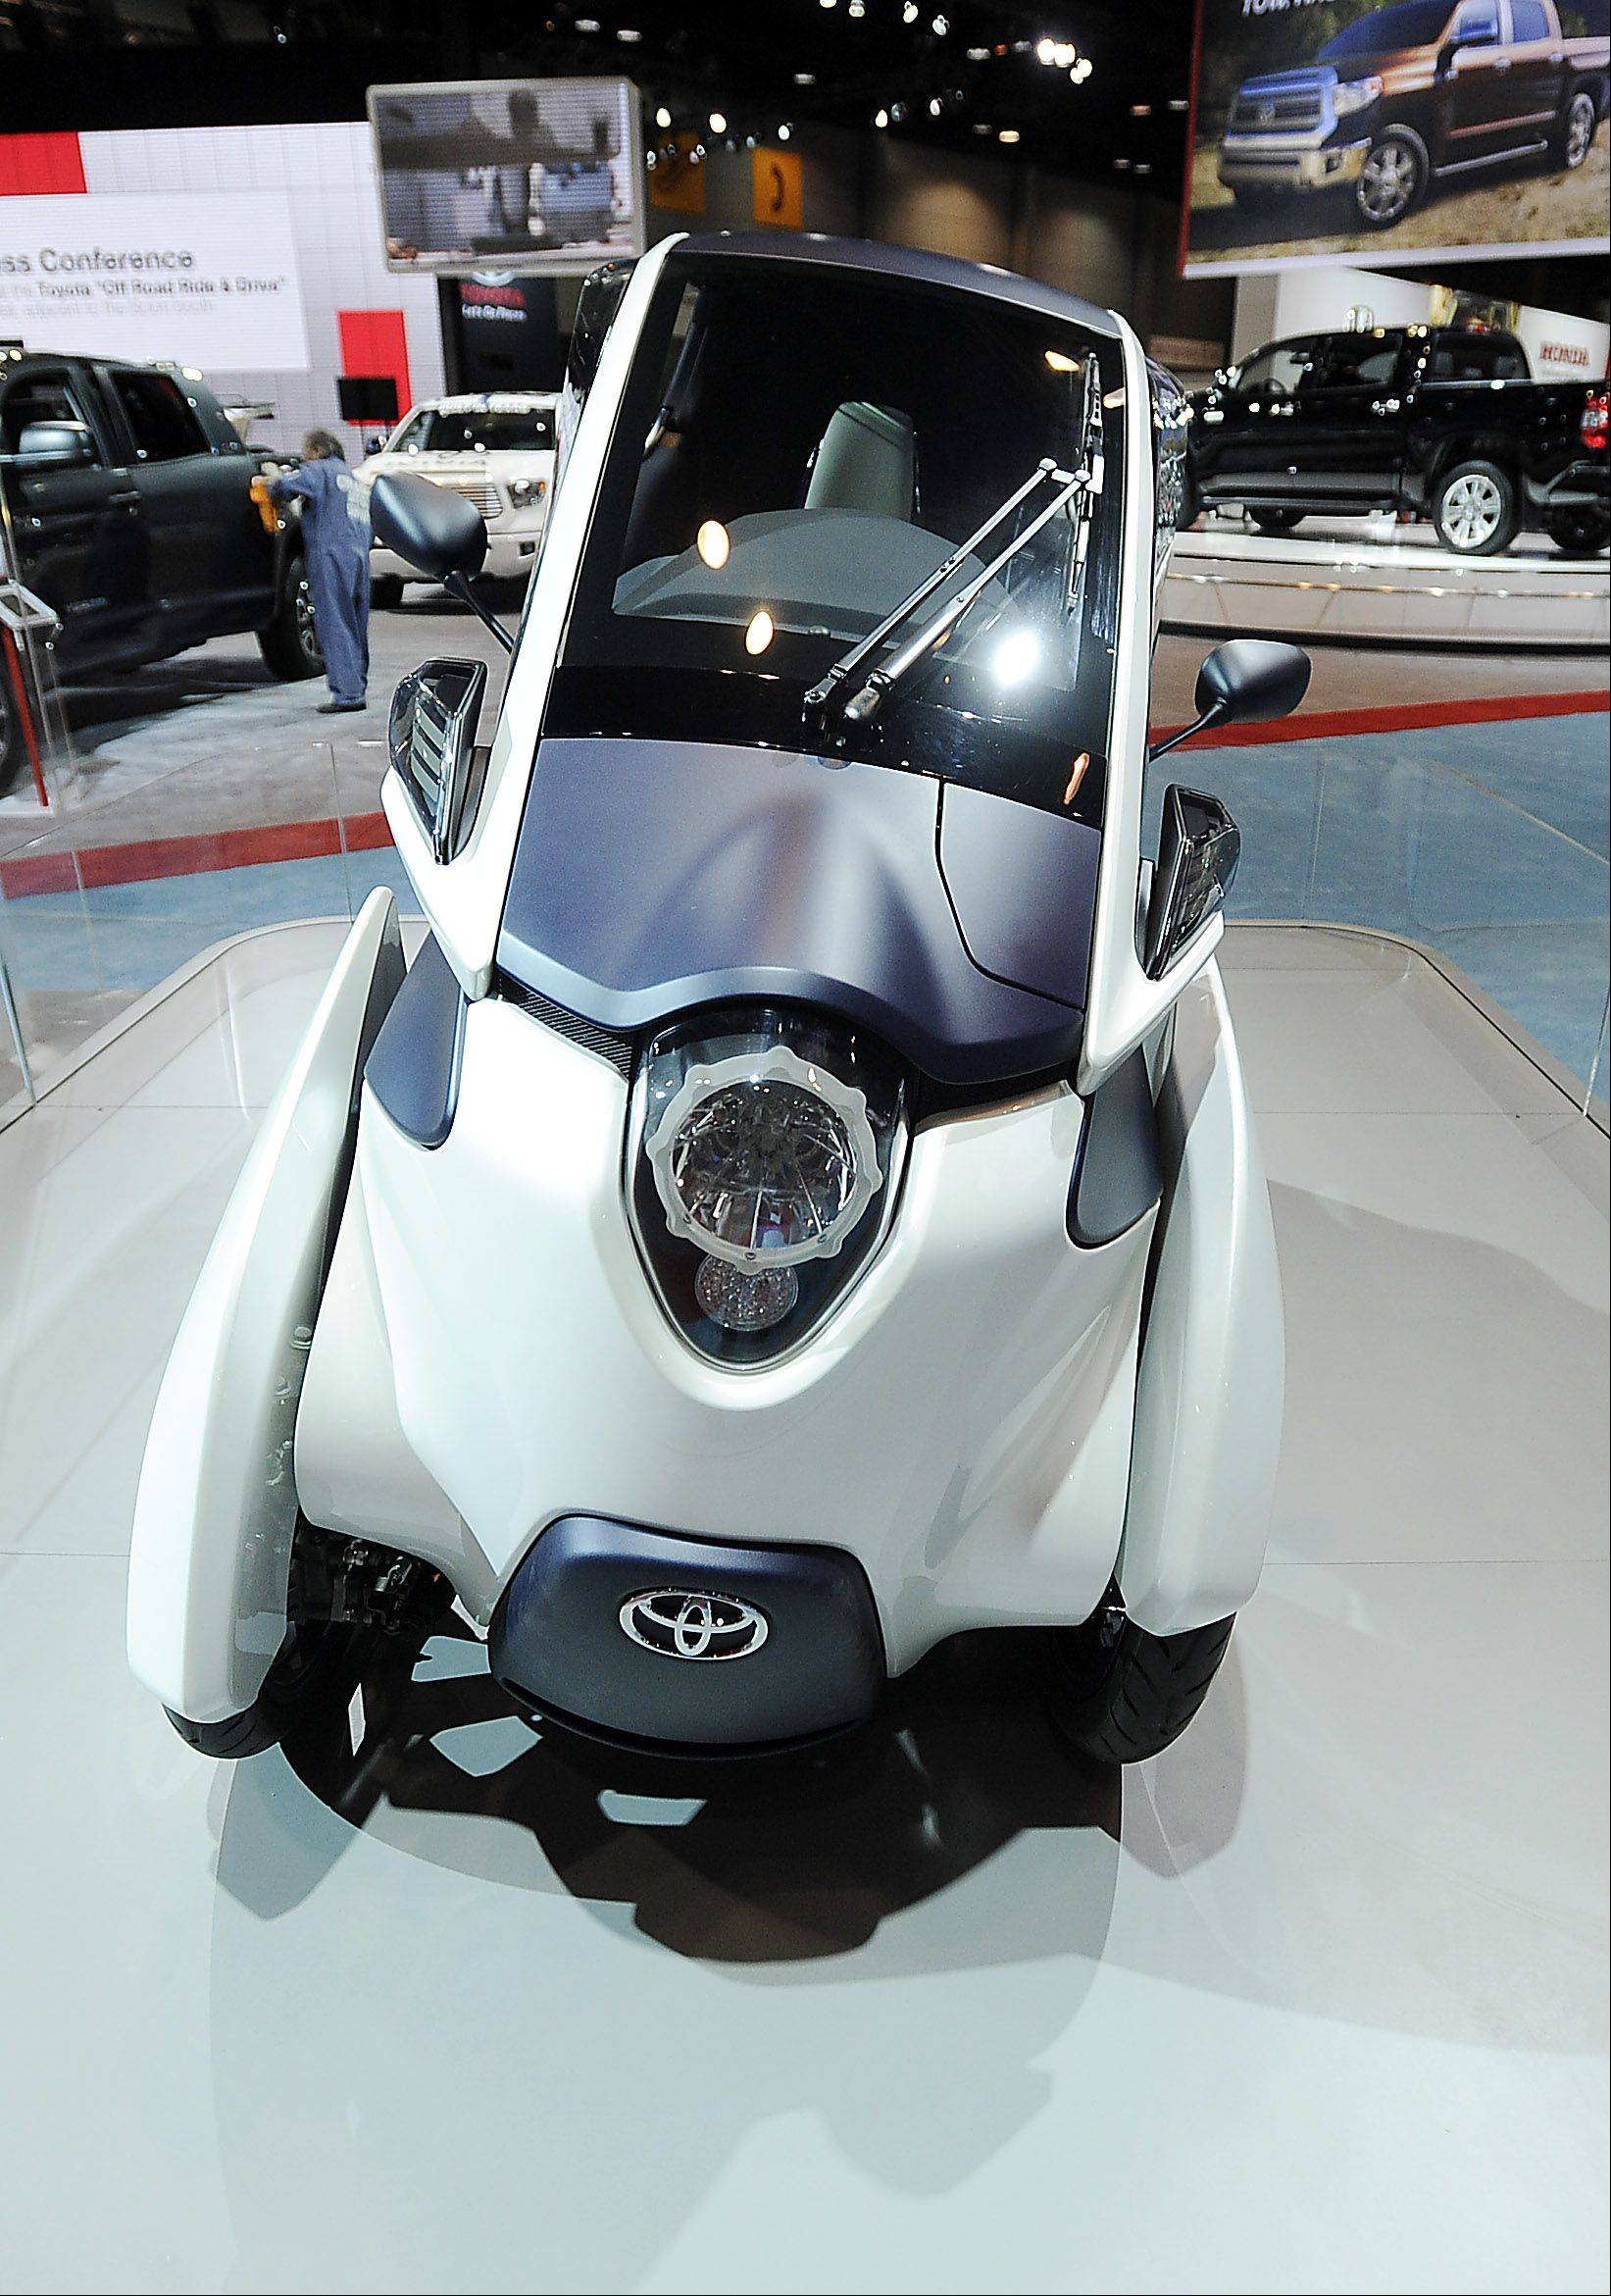 The Toyota Concept car iROAD will surely be a big hit with auto fans once they see how it moves on the street.